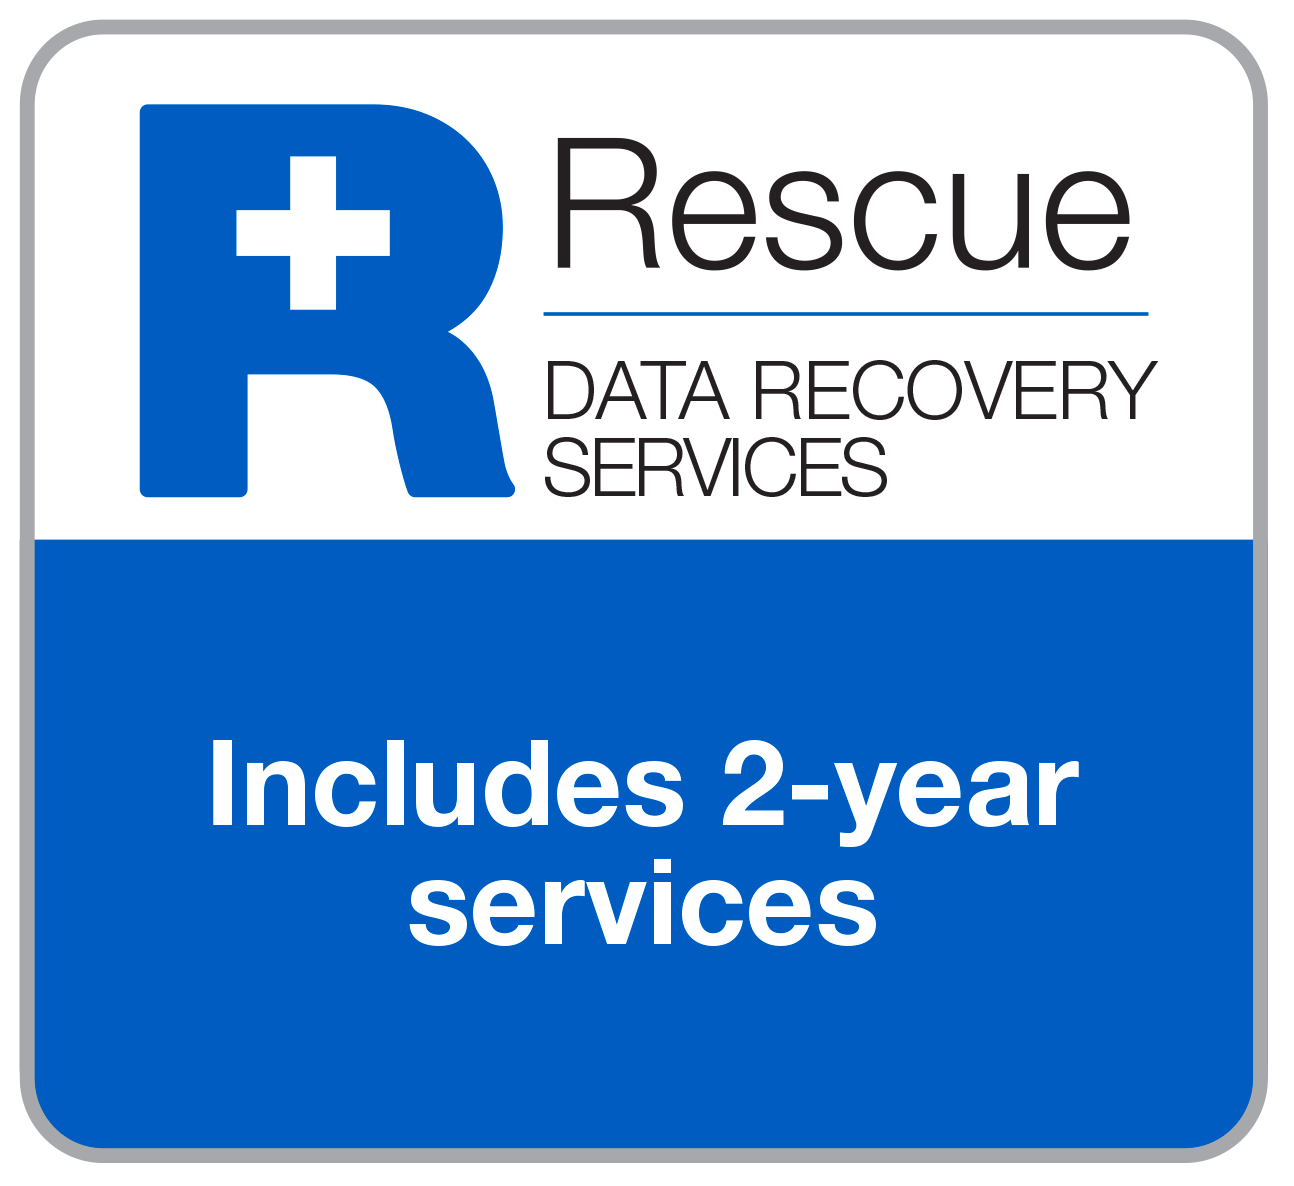 Rescue Data Recovery Services. Includes 2-year services.